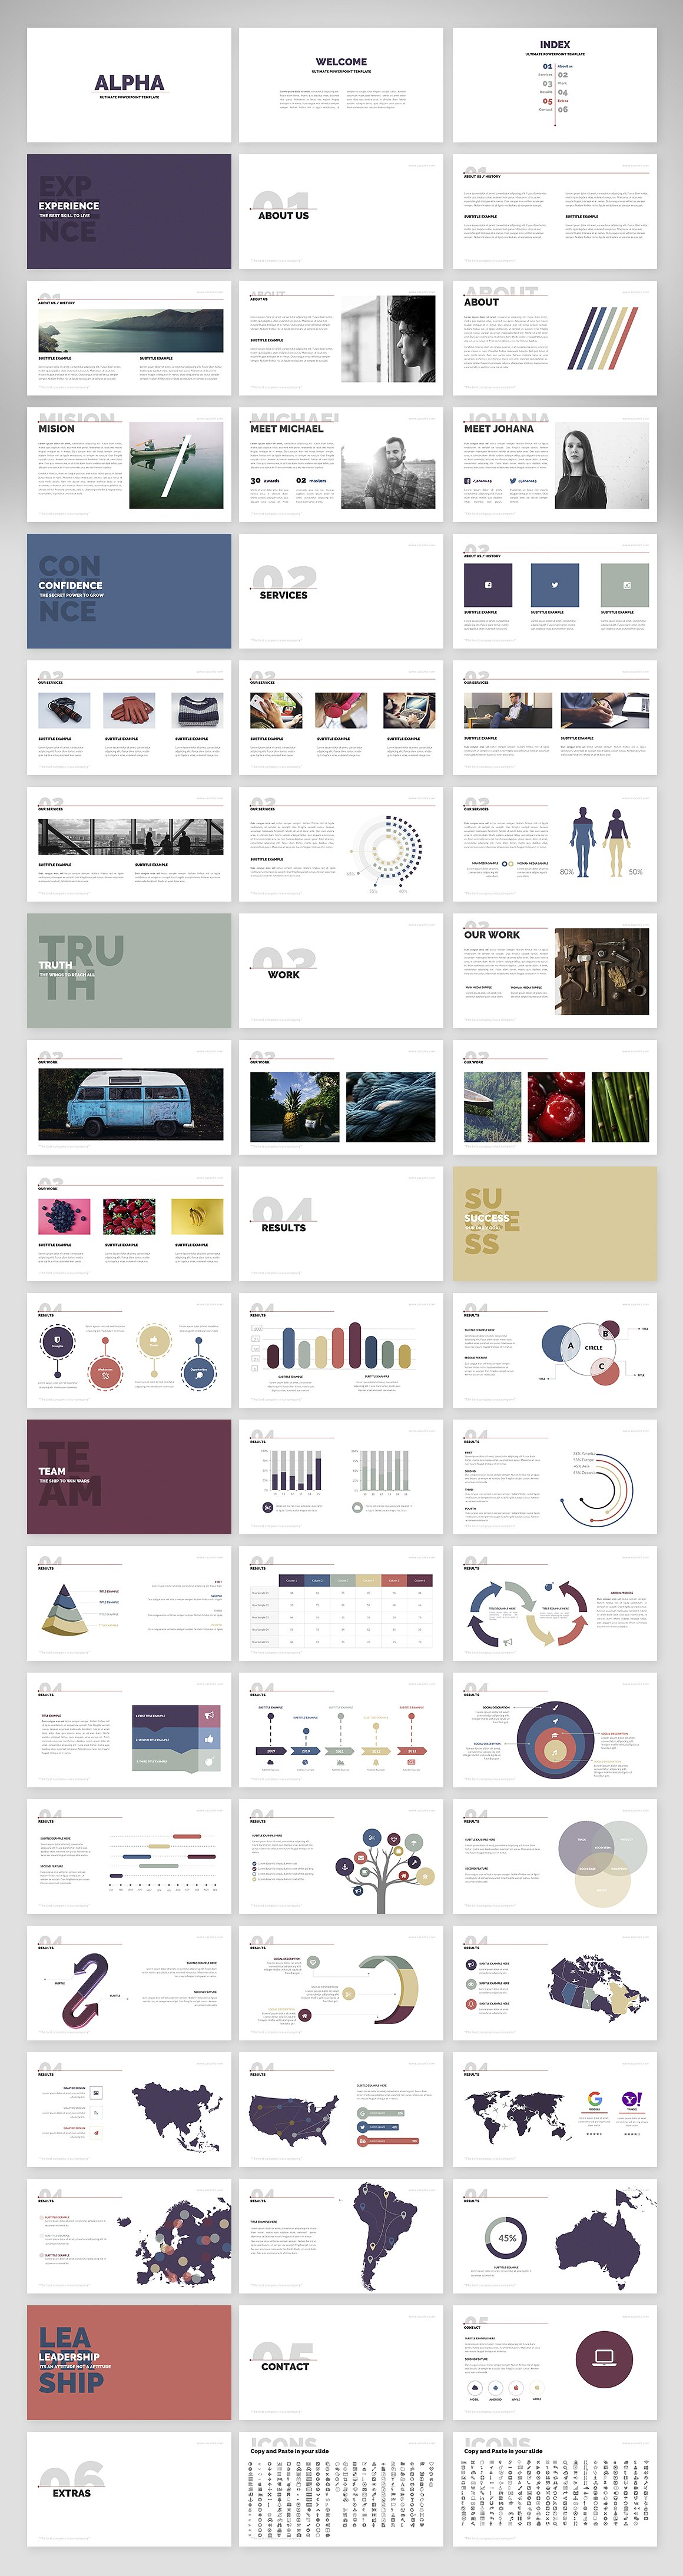 Alpha Powerpoint Presentation Template example image 2